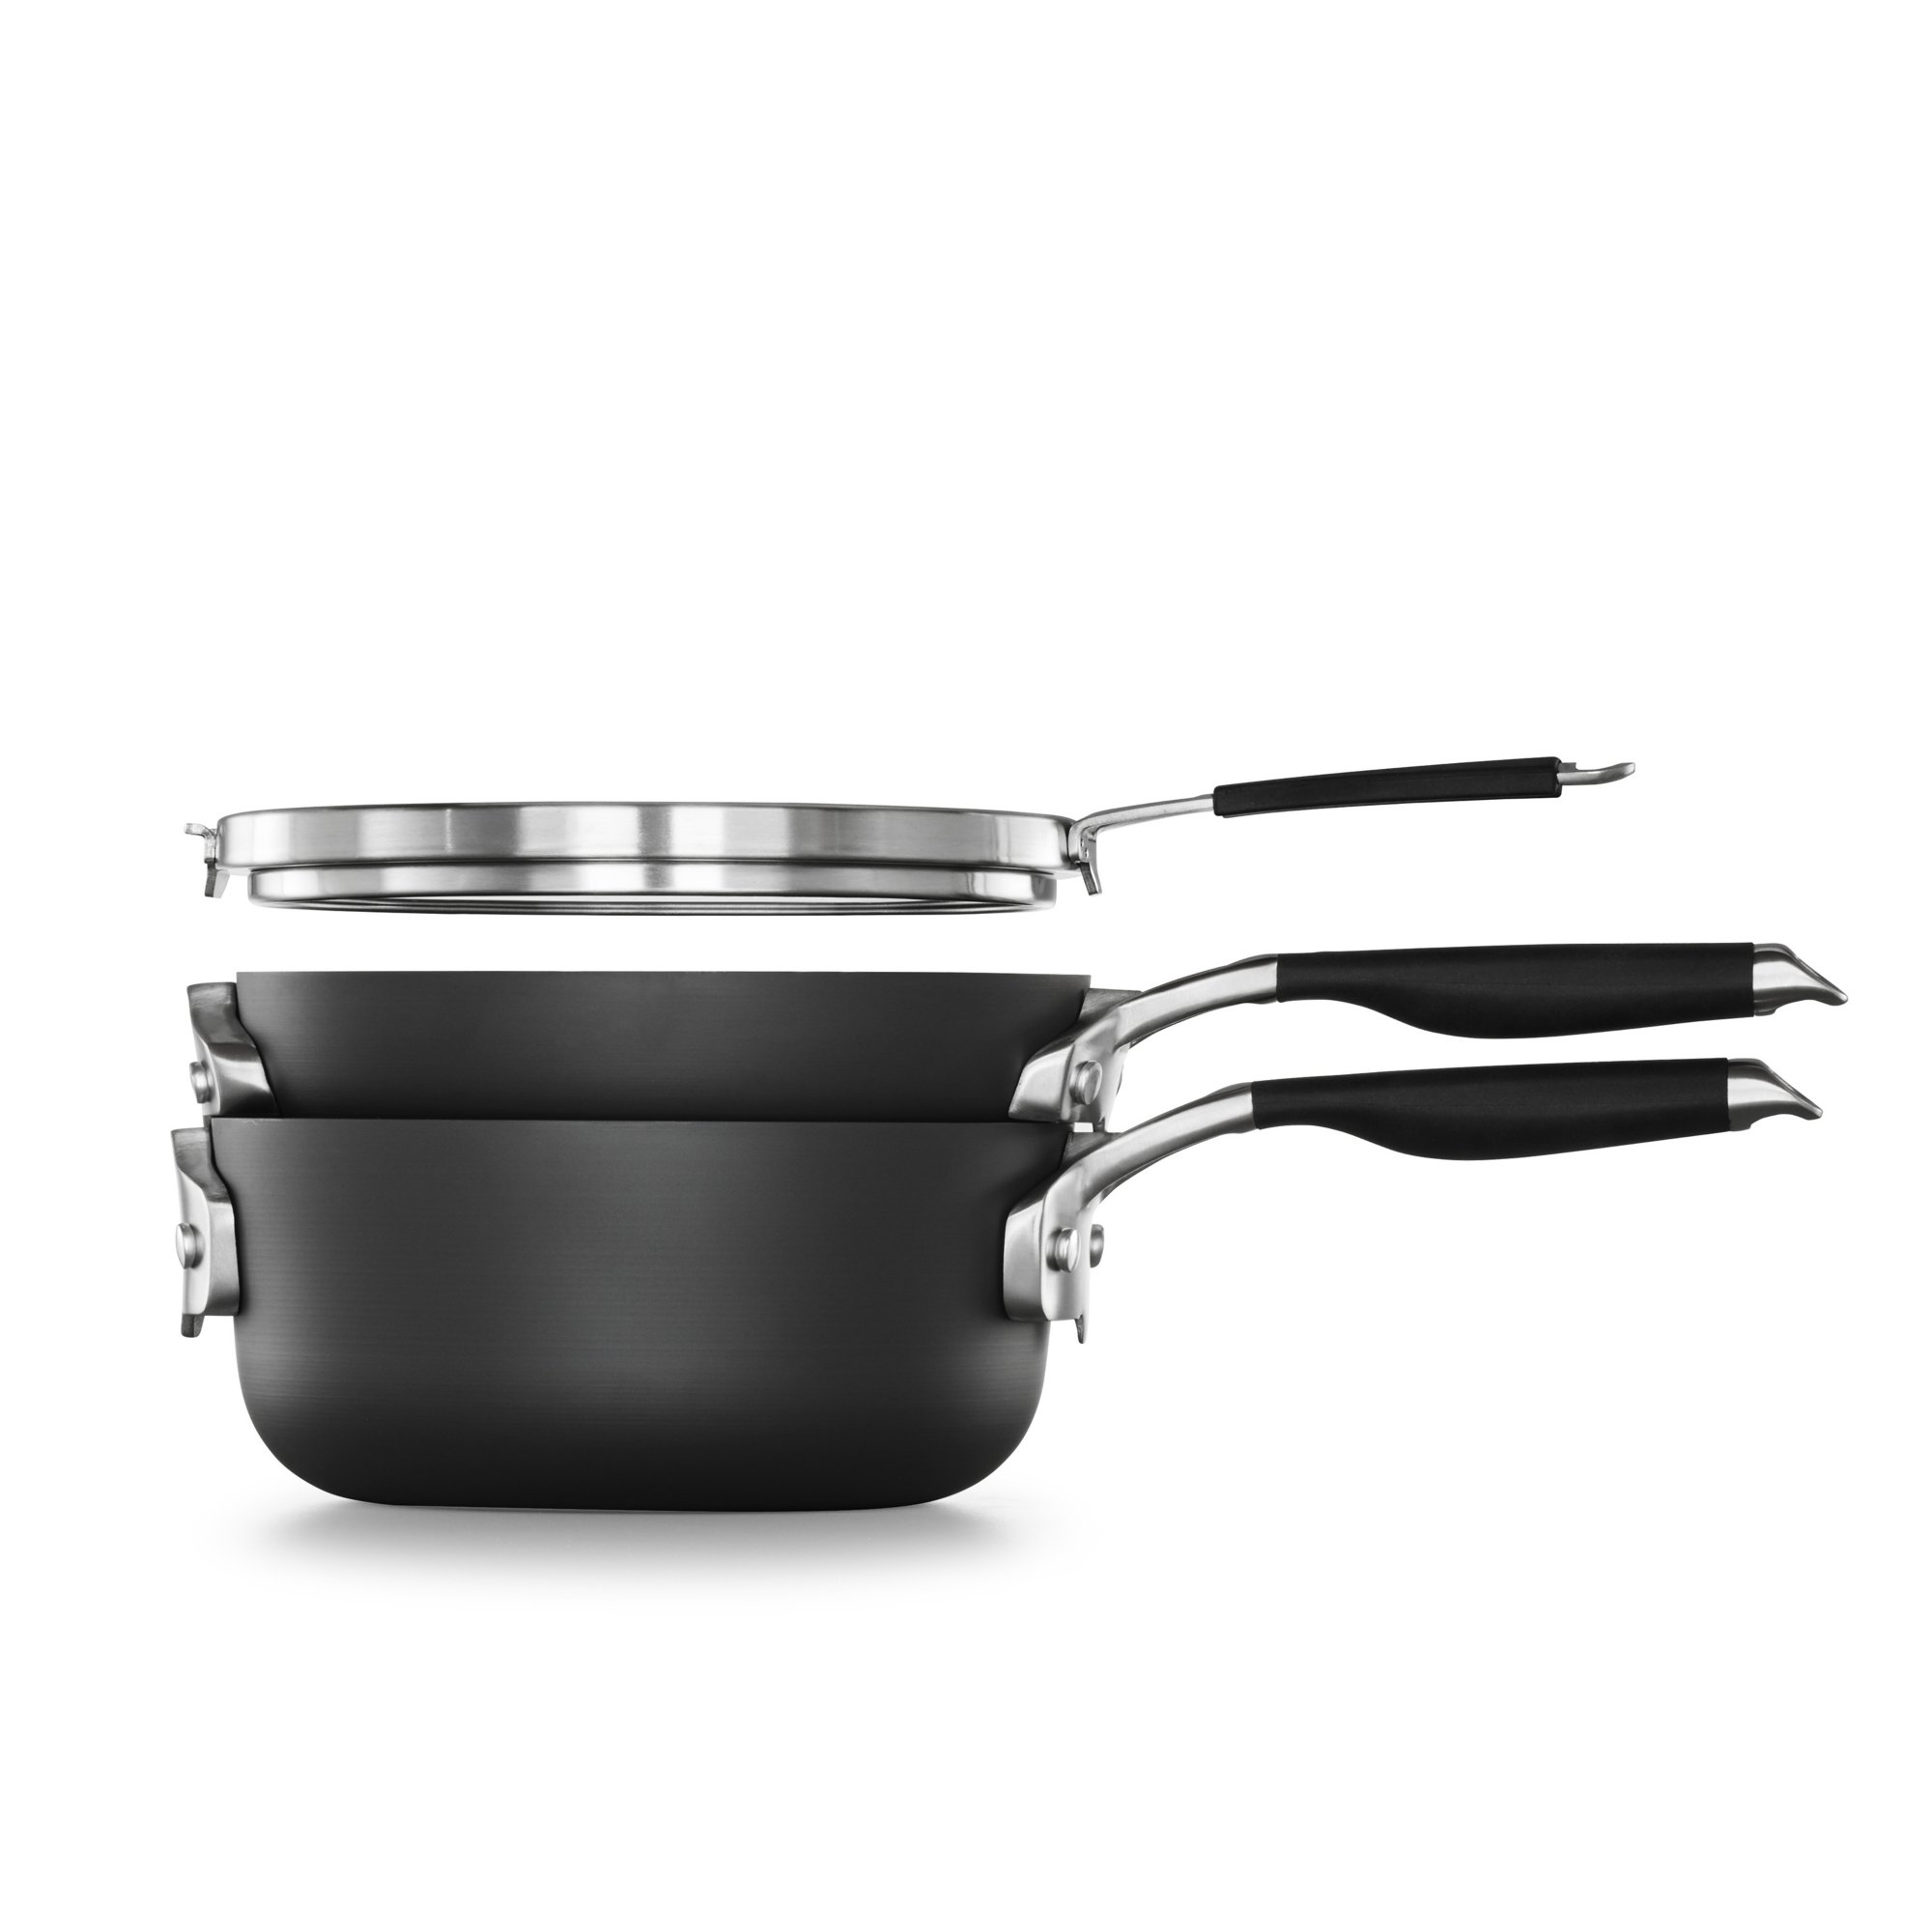 Select by Calphalon Space Saving Hard-Anodized Nonstick 3-Piece 8-Inch Cookware Set